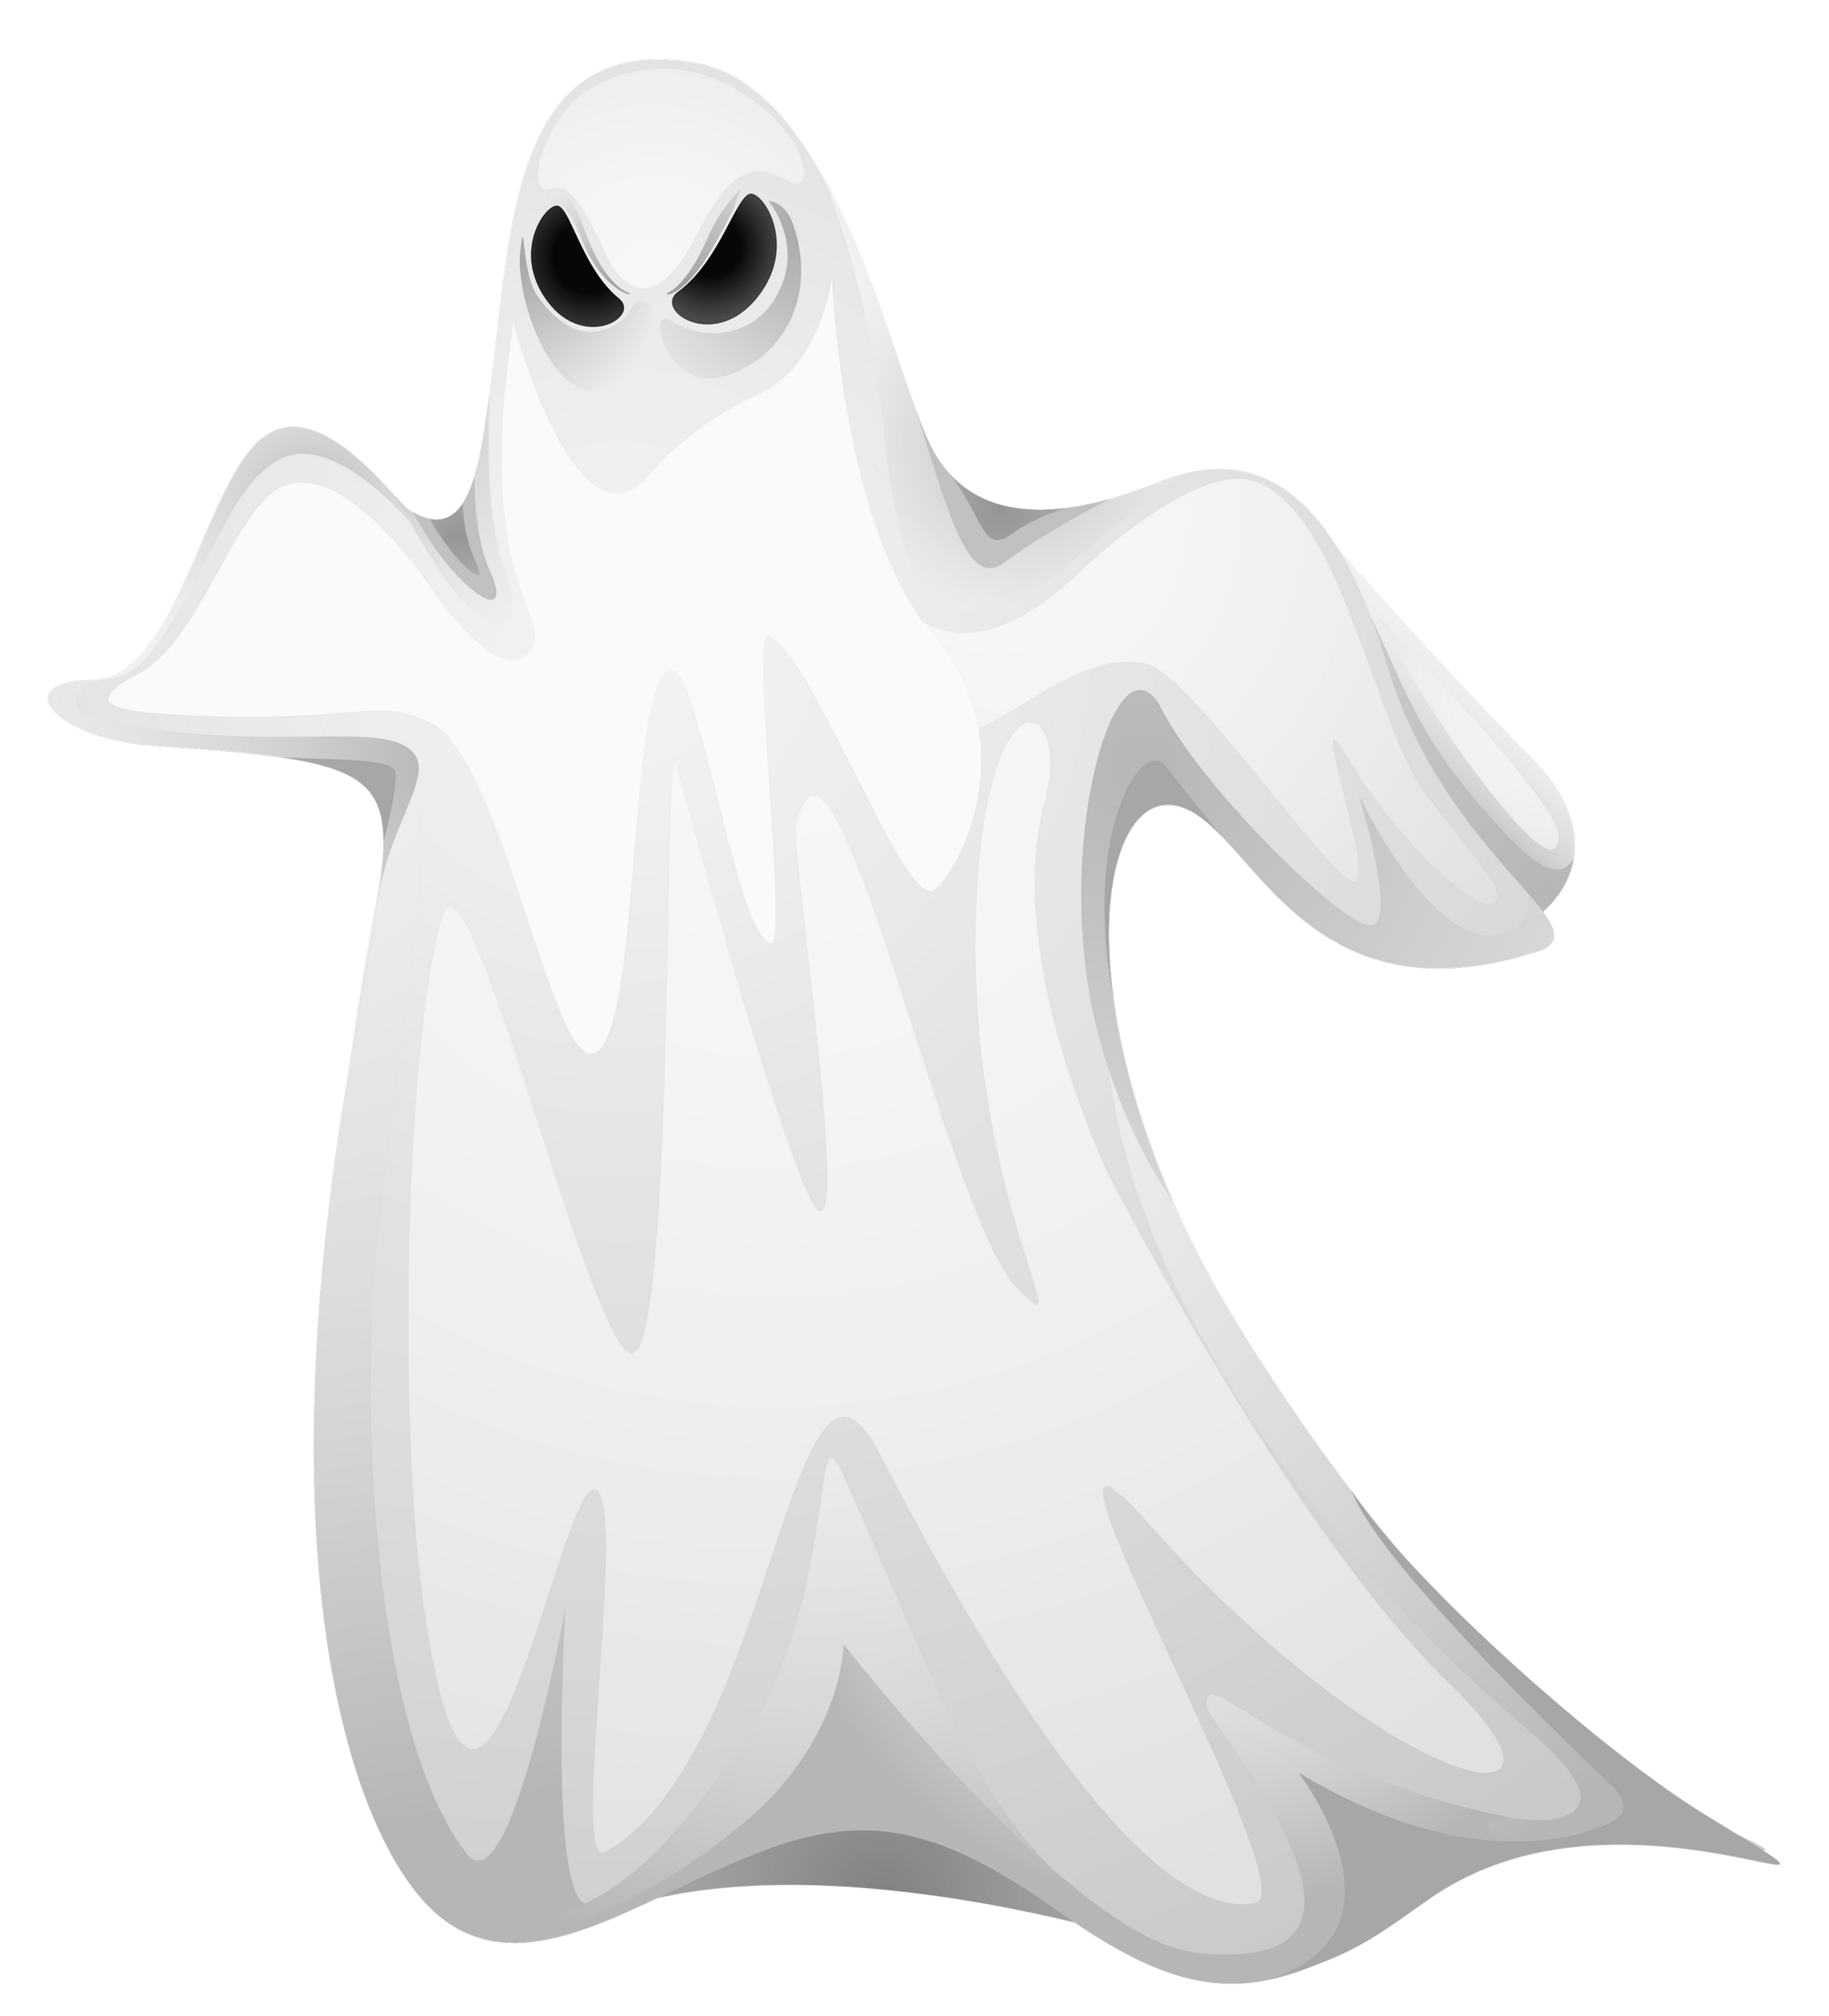 uploads ghost ghost PNG77 4